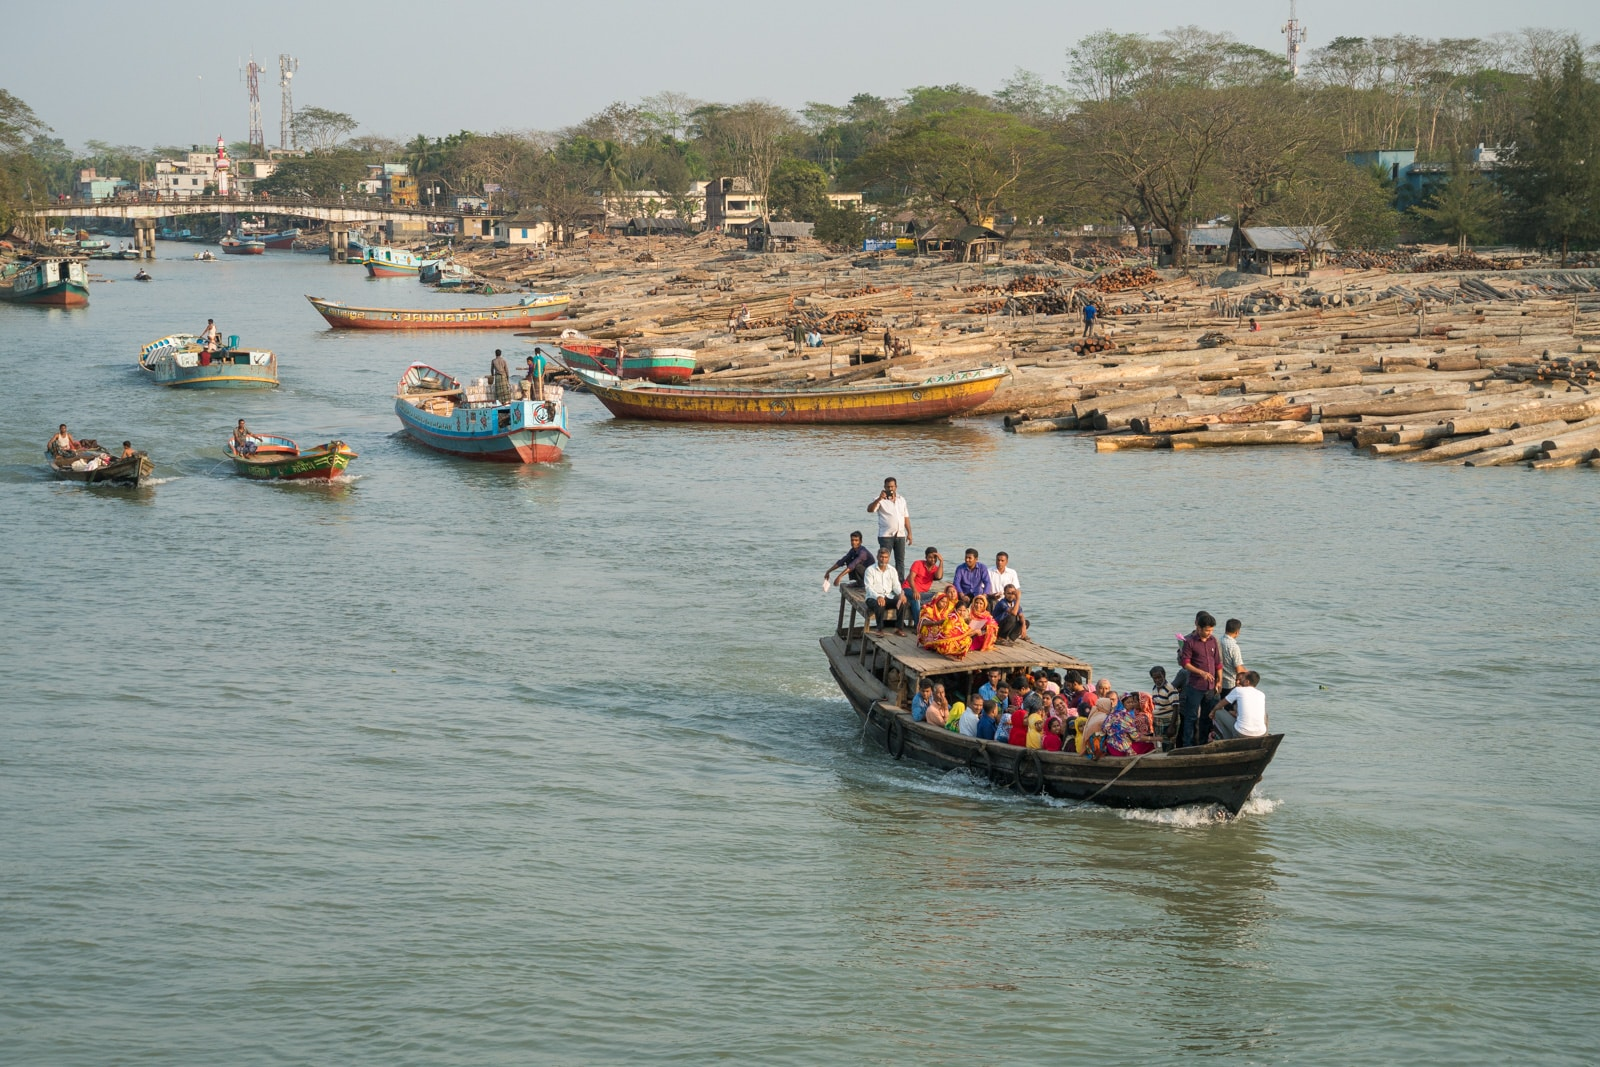 How to take a launch boat from Khulna to Dhaka via Hularhat, Bangladesh - Boats sailing through a lumber yard - Lost With Purpose travel blog